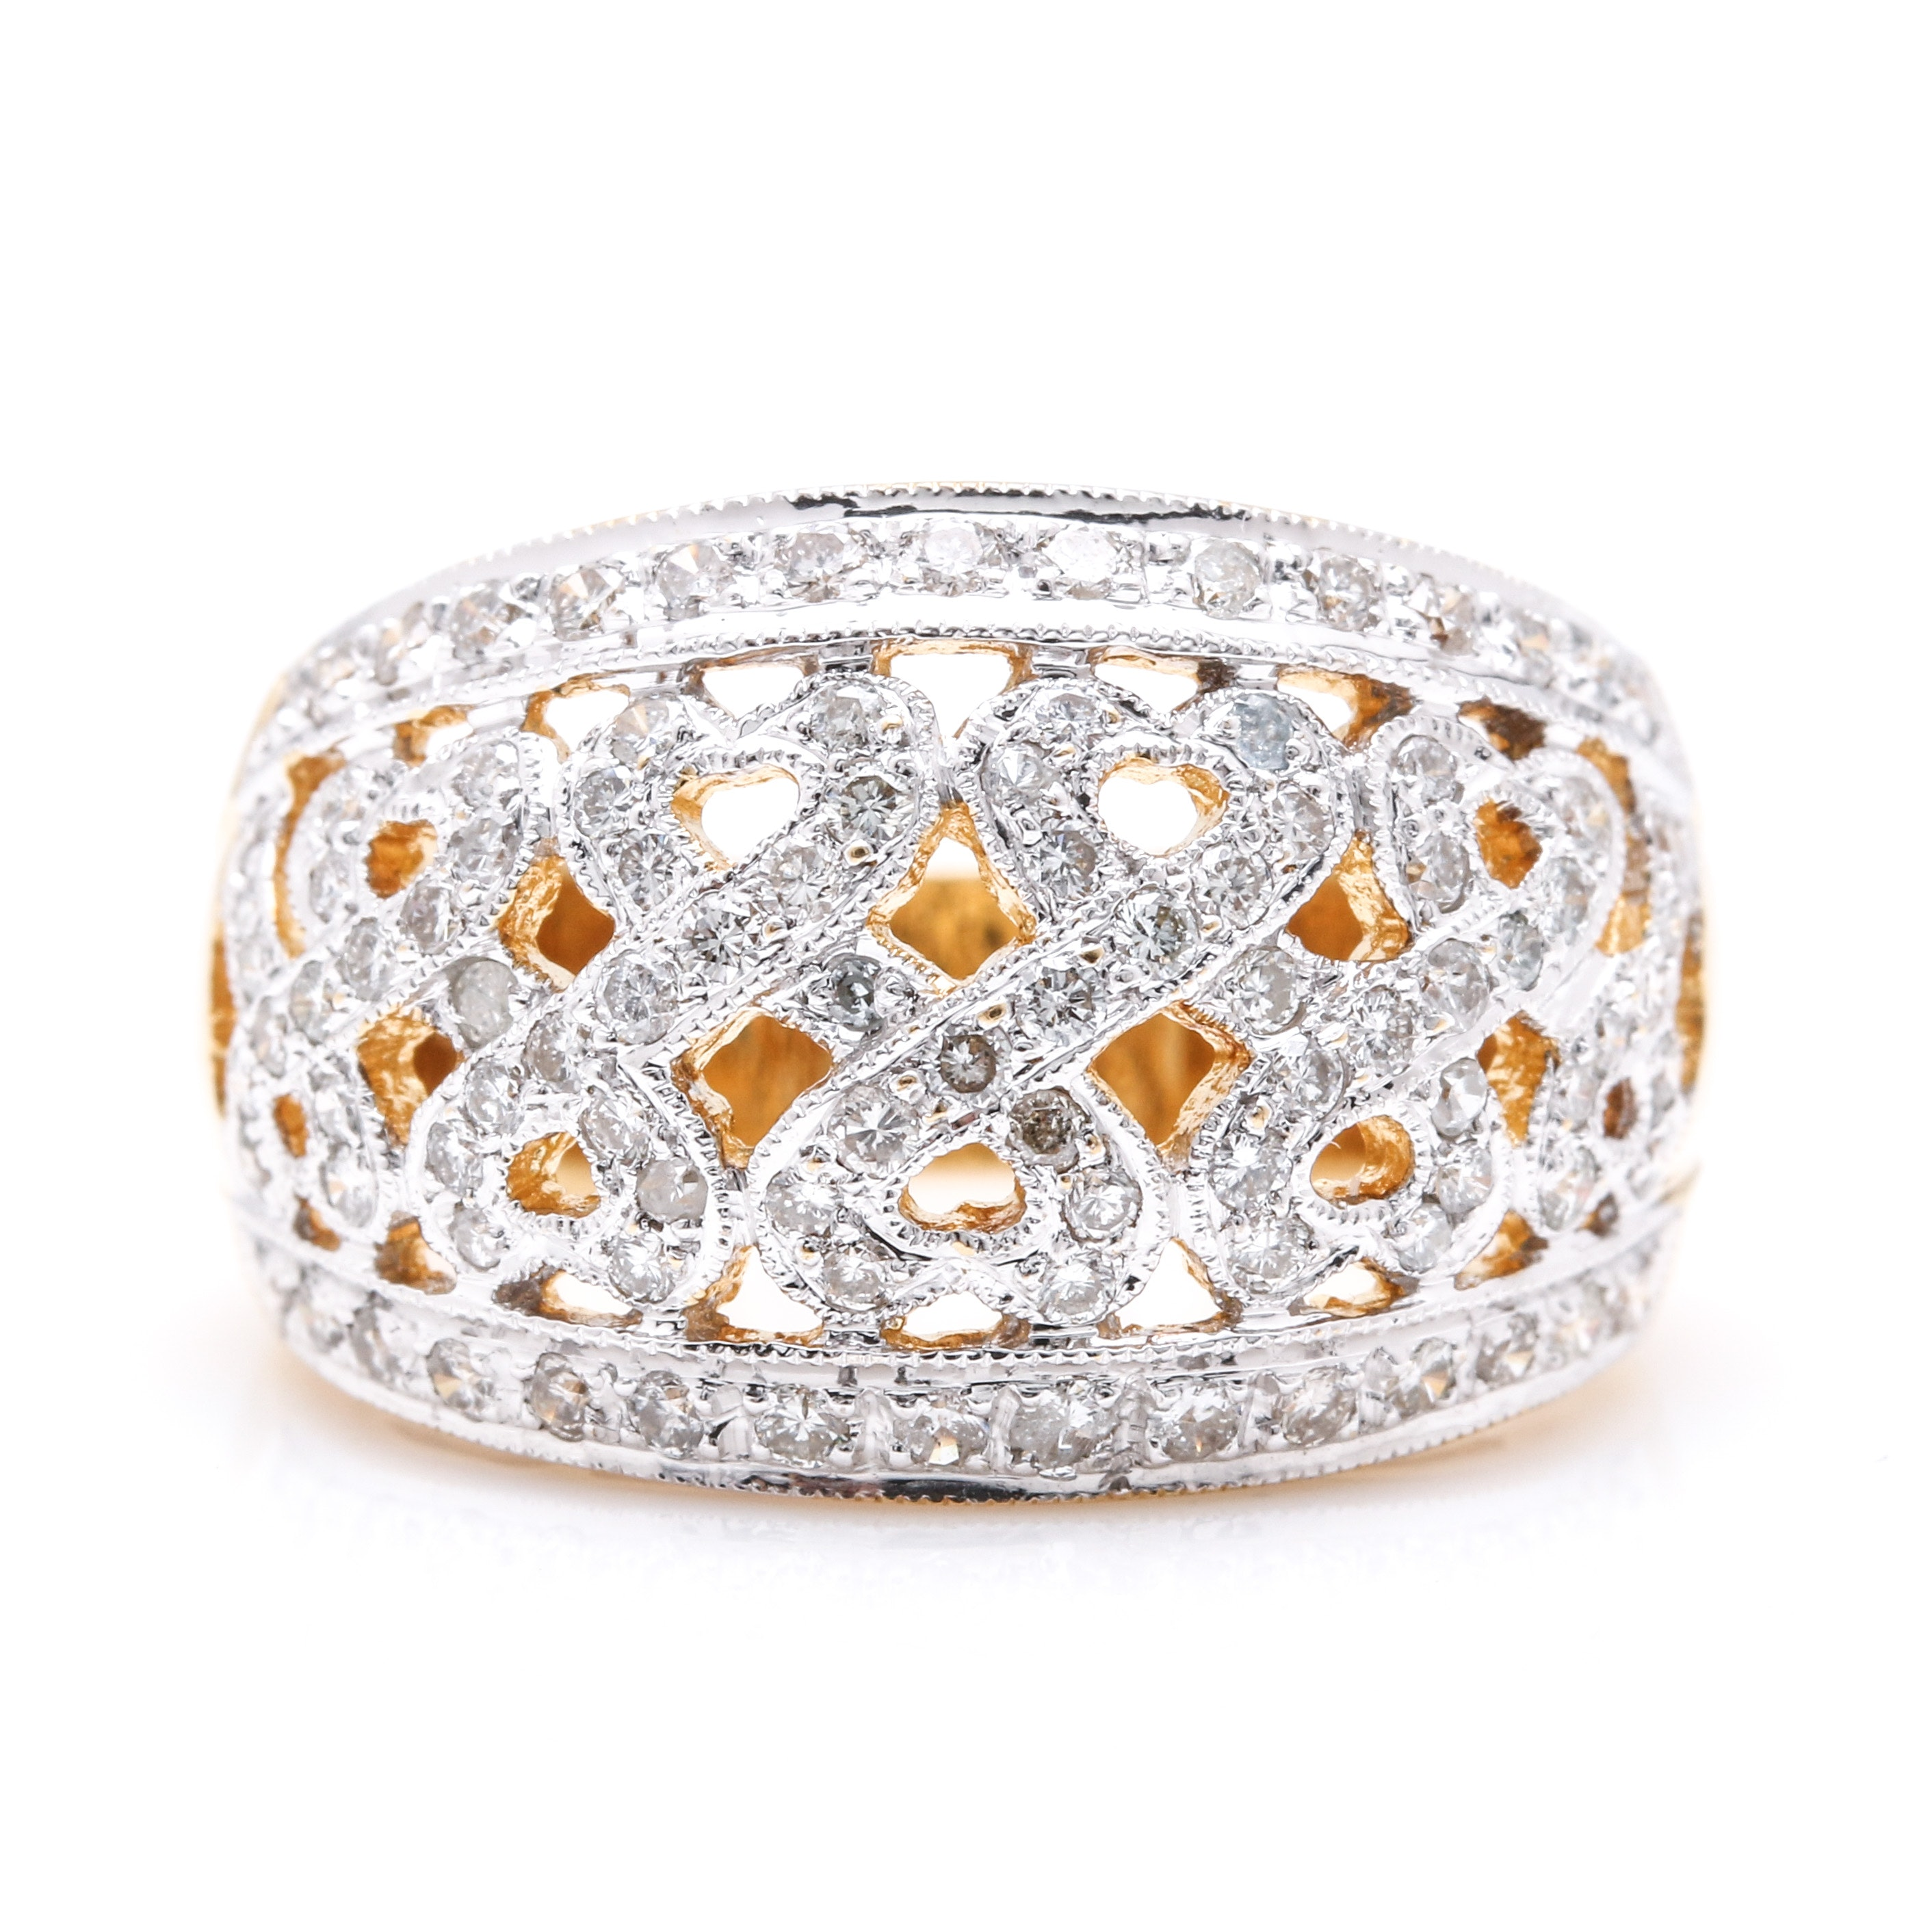 18K Yellow Gold Diamond Domed Ring